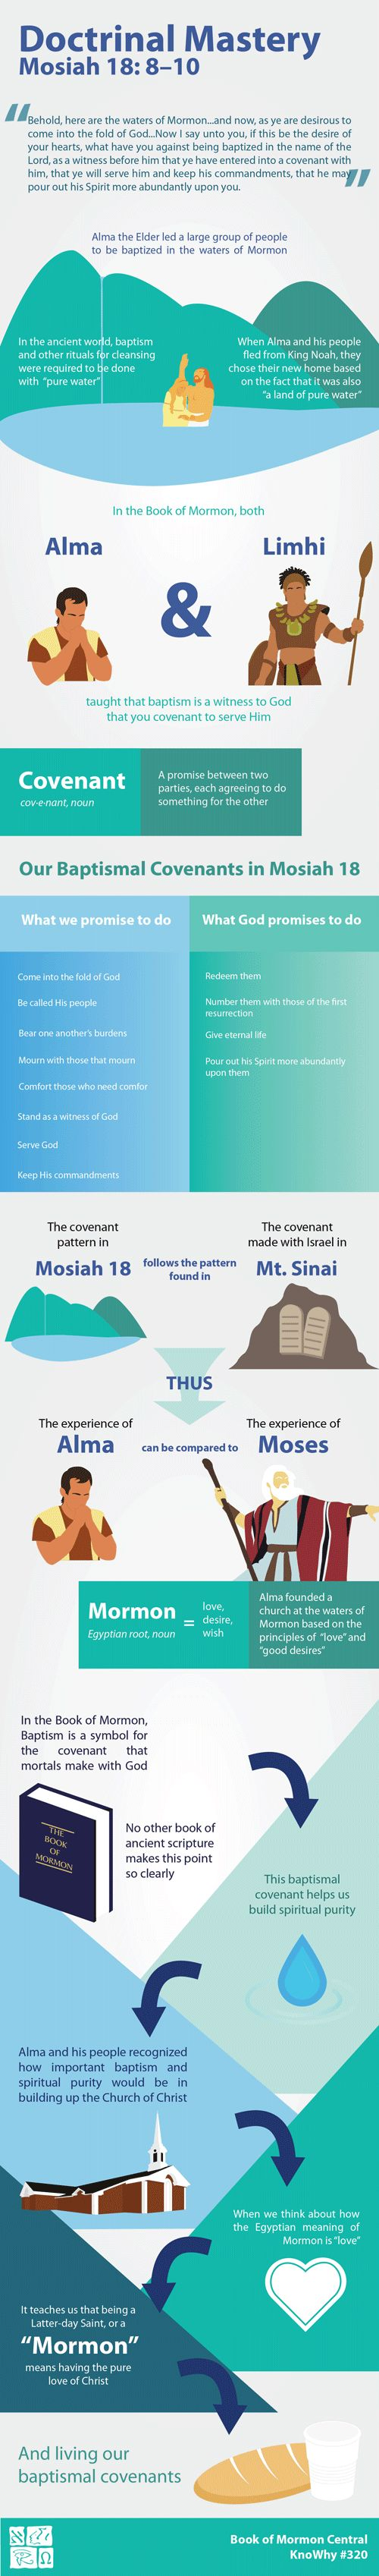 Doctrinal Mastery Mosiah 18:8–10 Infographic by Book of Mormon Central